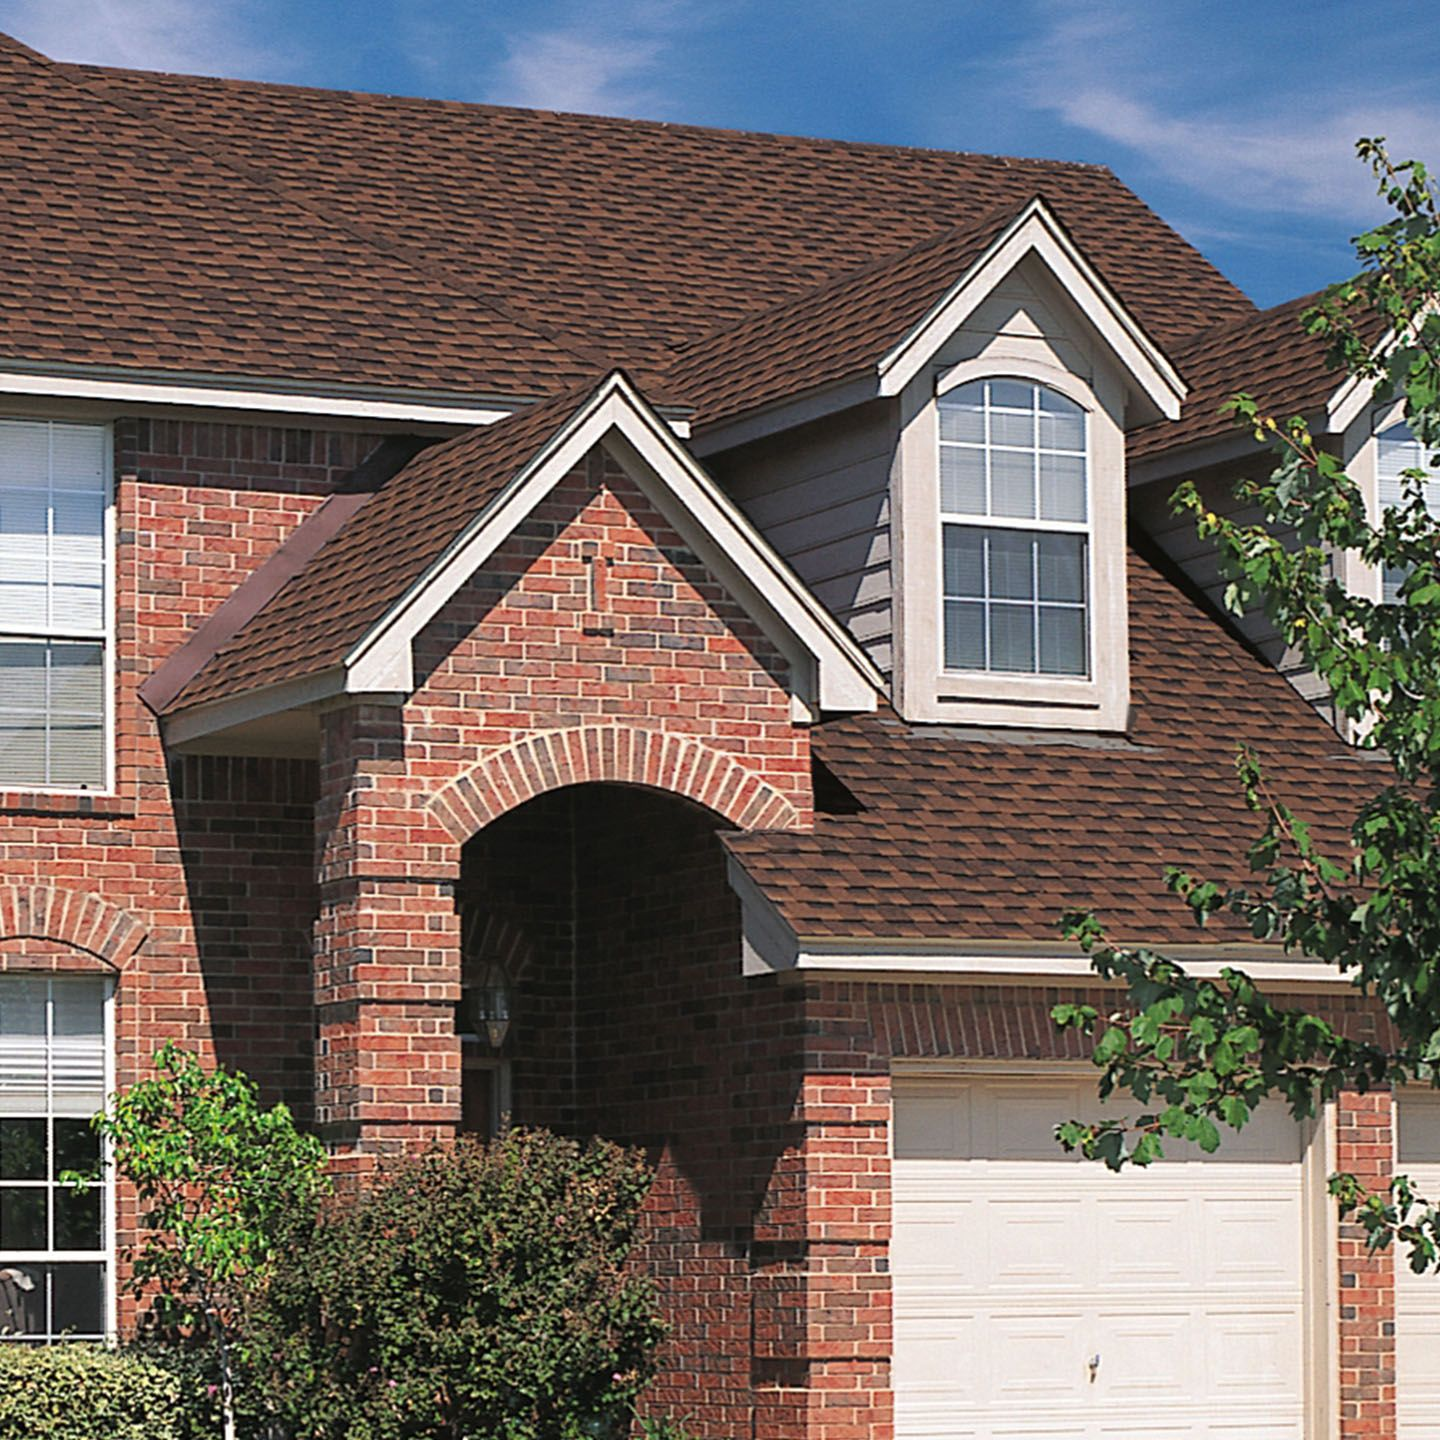 Roof Shingle Colors How To Pick The Best Asphalt Shingle Color For Your Home Roof Shingle Colors Shingle Colors Red Brick House